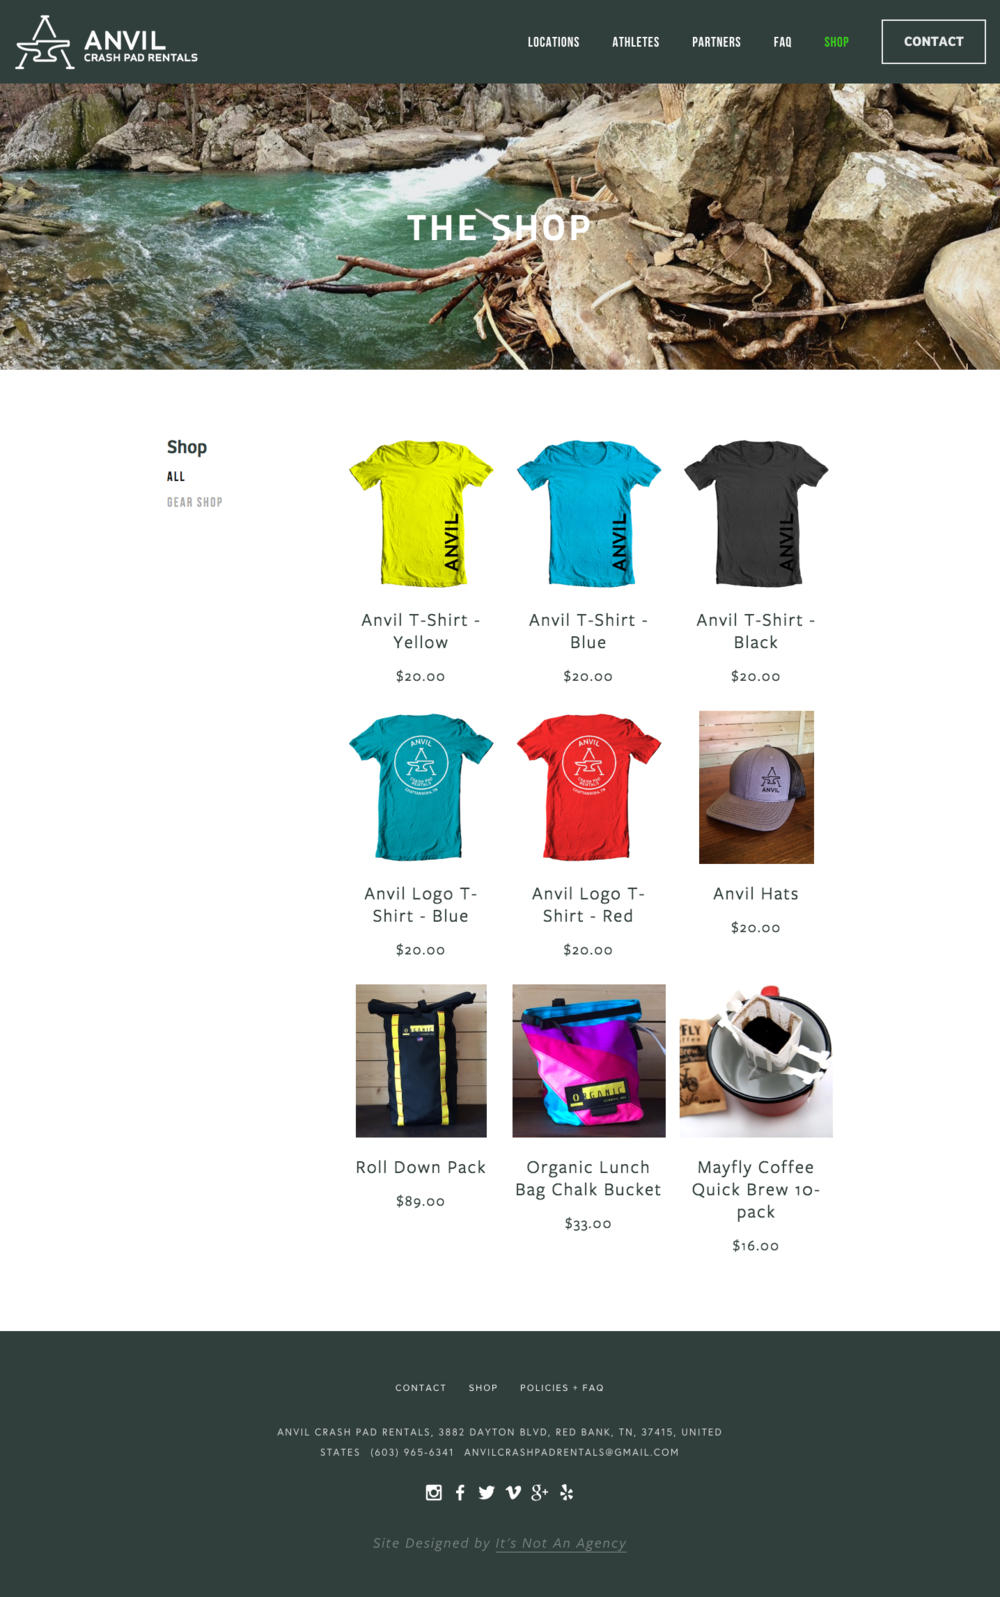 Ecommerce Website Design_Anvil Crash Pad Rentals7.png